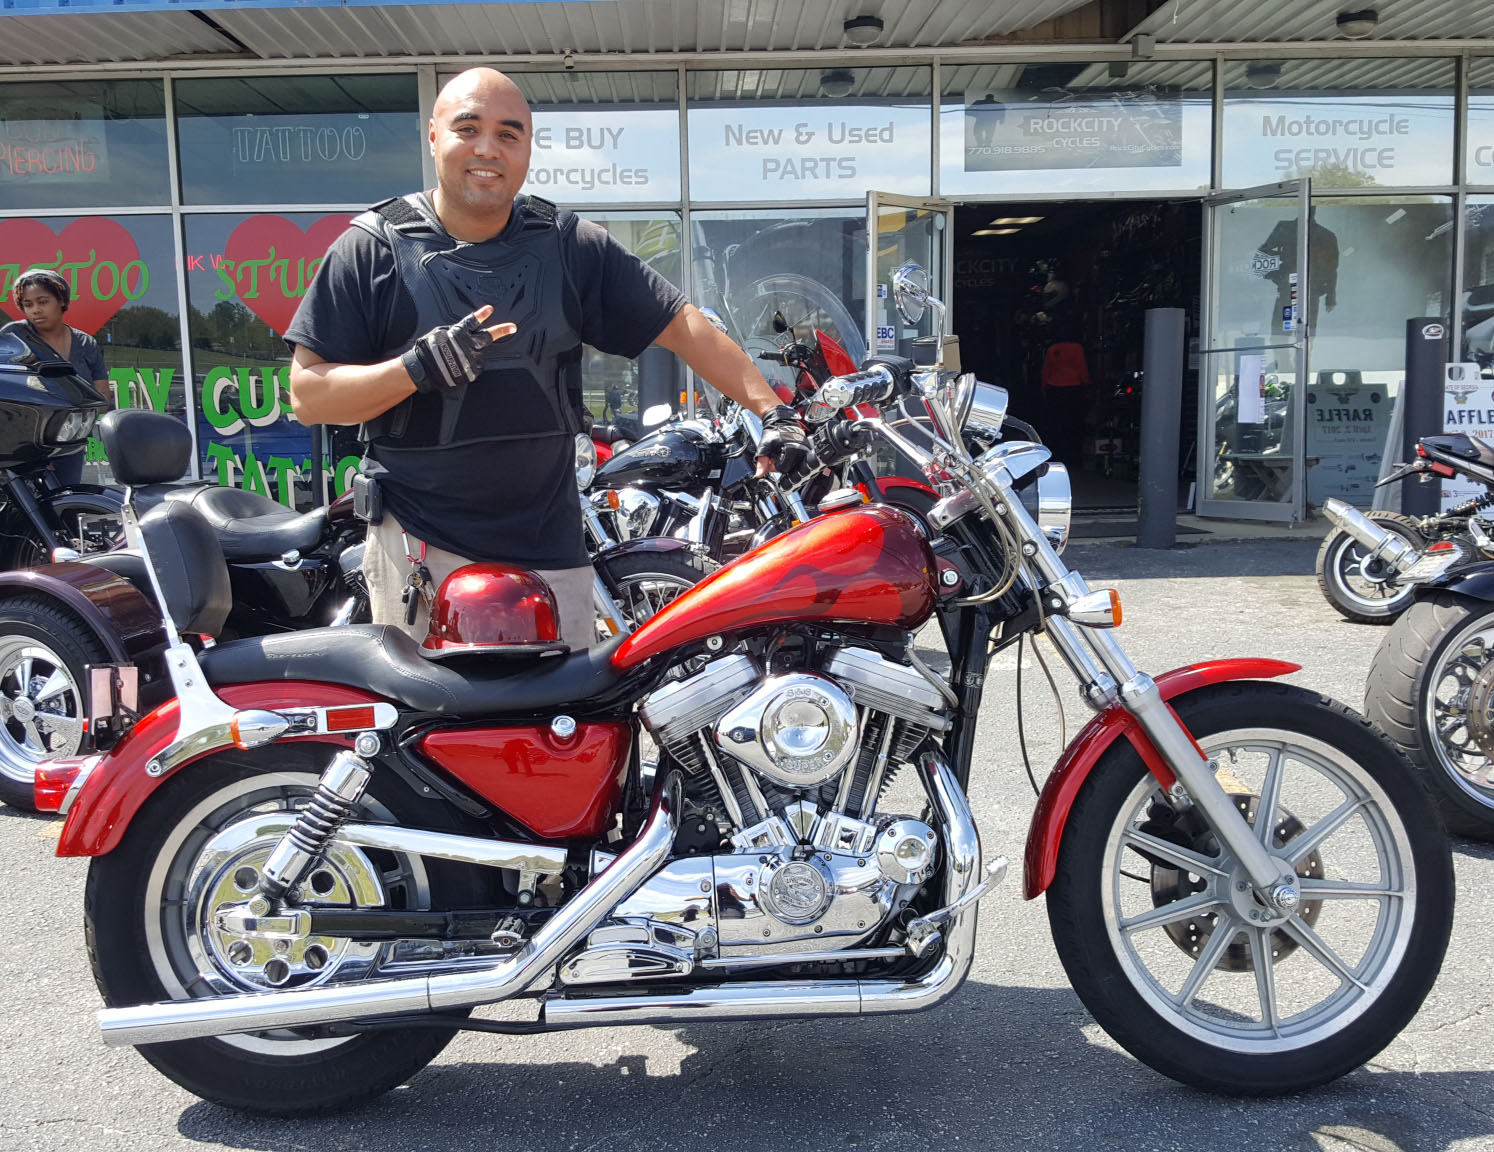 Tony S. with his 1992 Harley-Davidson XL883 Sportster